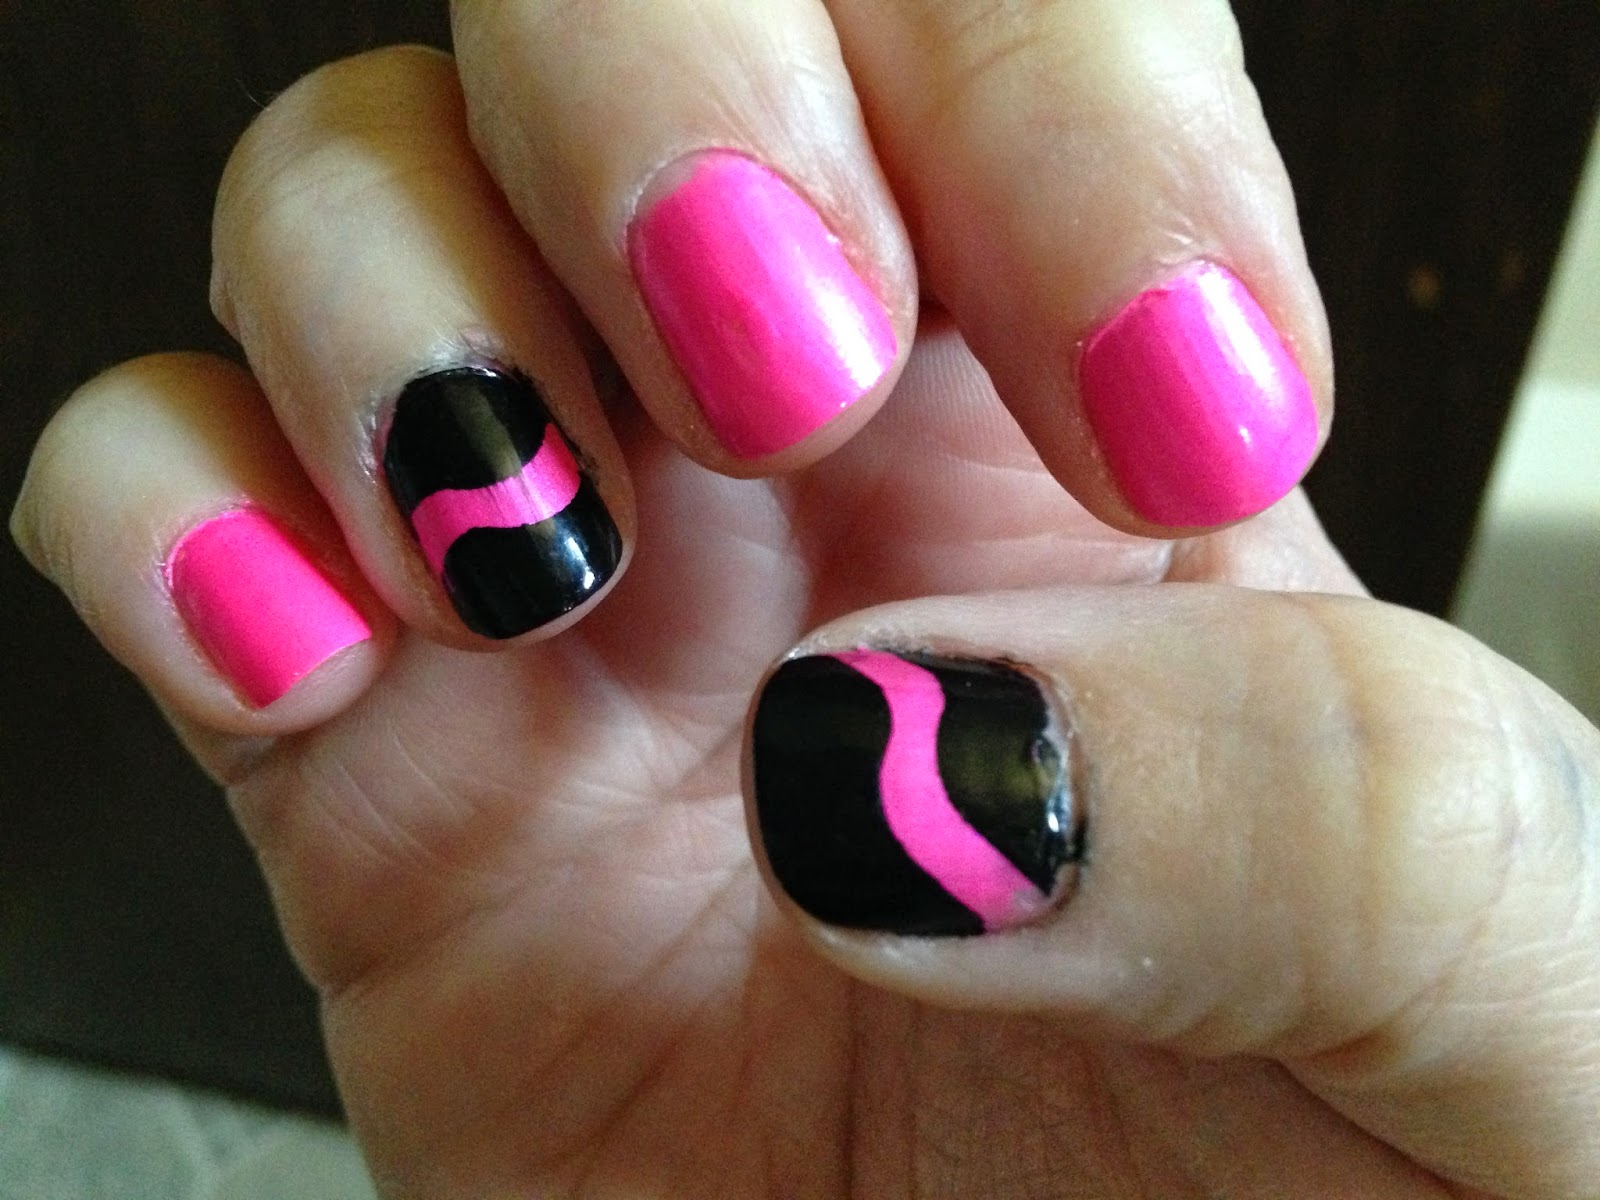 Small Budget Beauty: Review: Creative French Tip Nail Guides